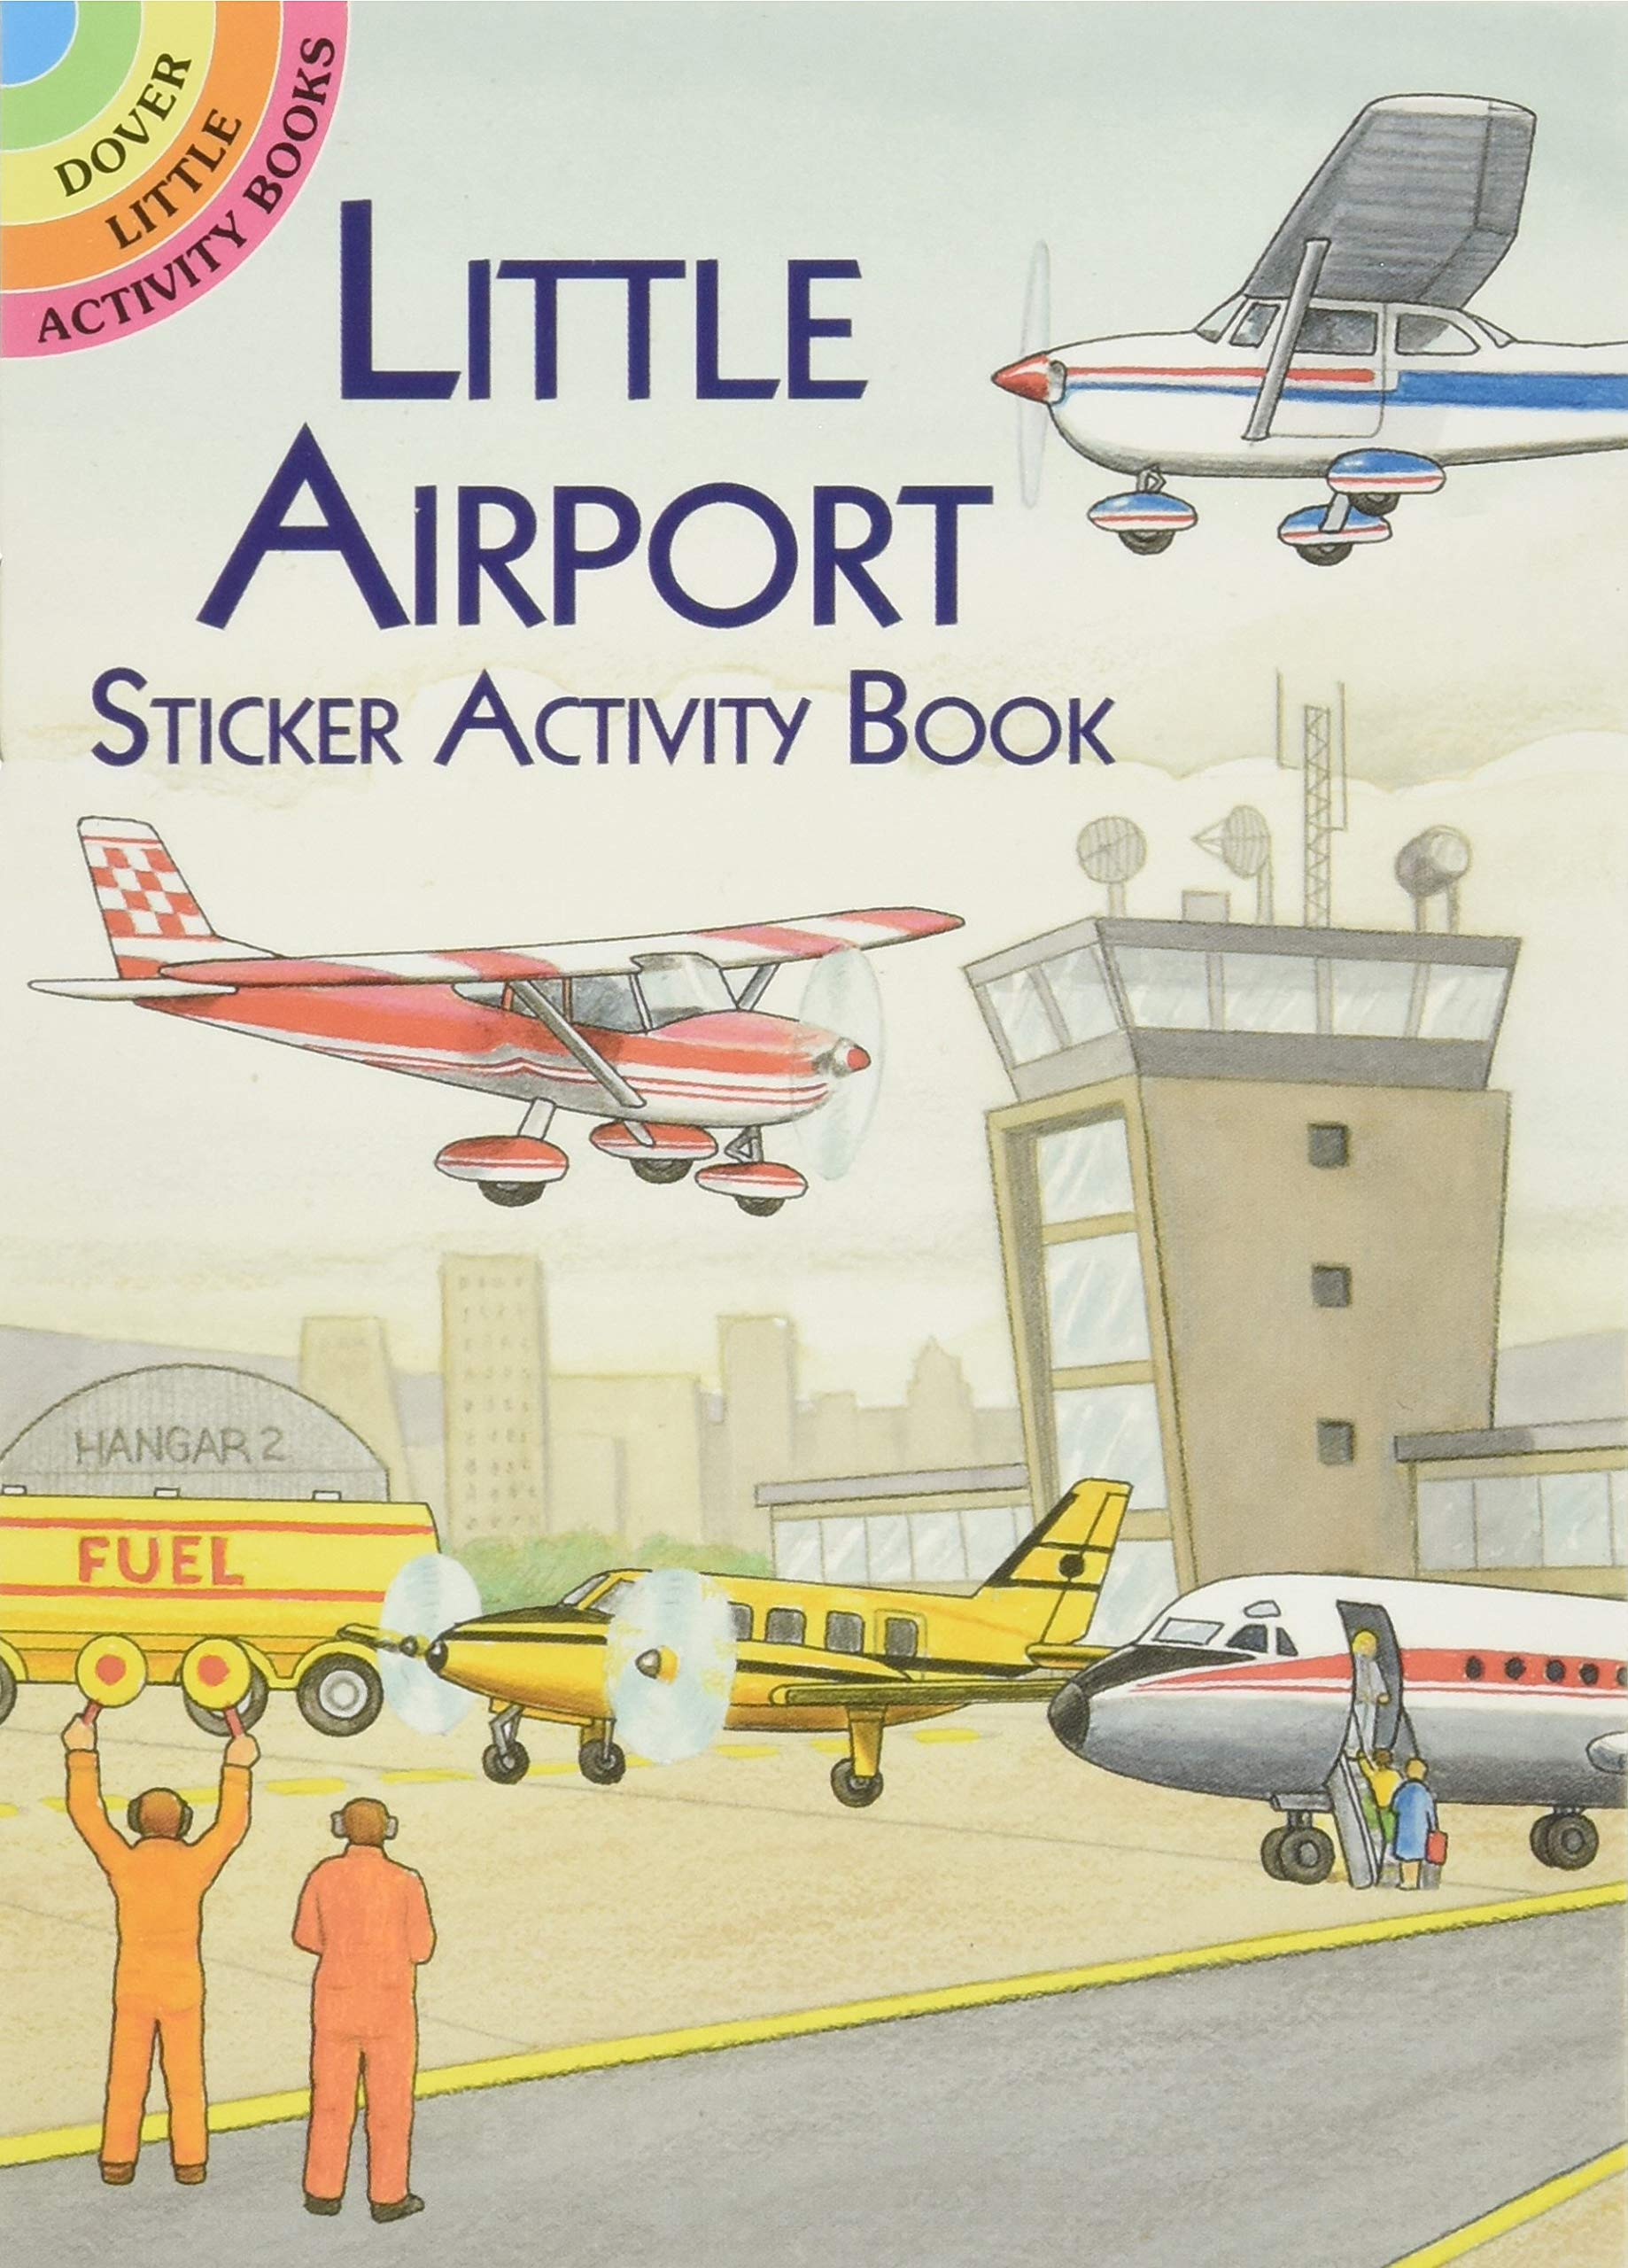 Image for Little Airport Sticker Activity Book (Dover Little Activity Books Stickers)